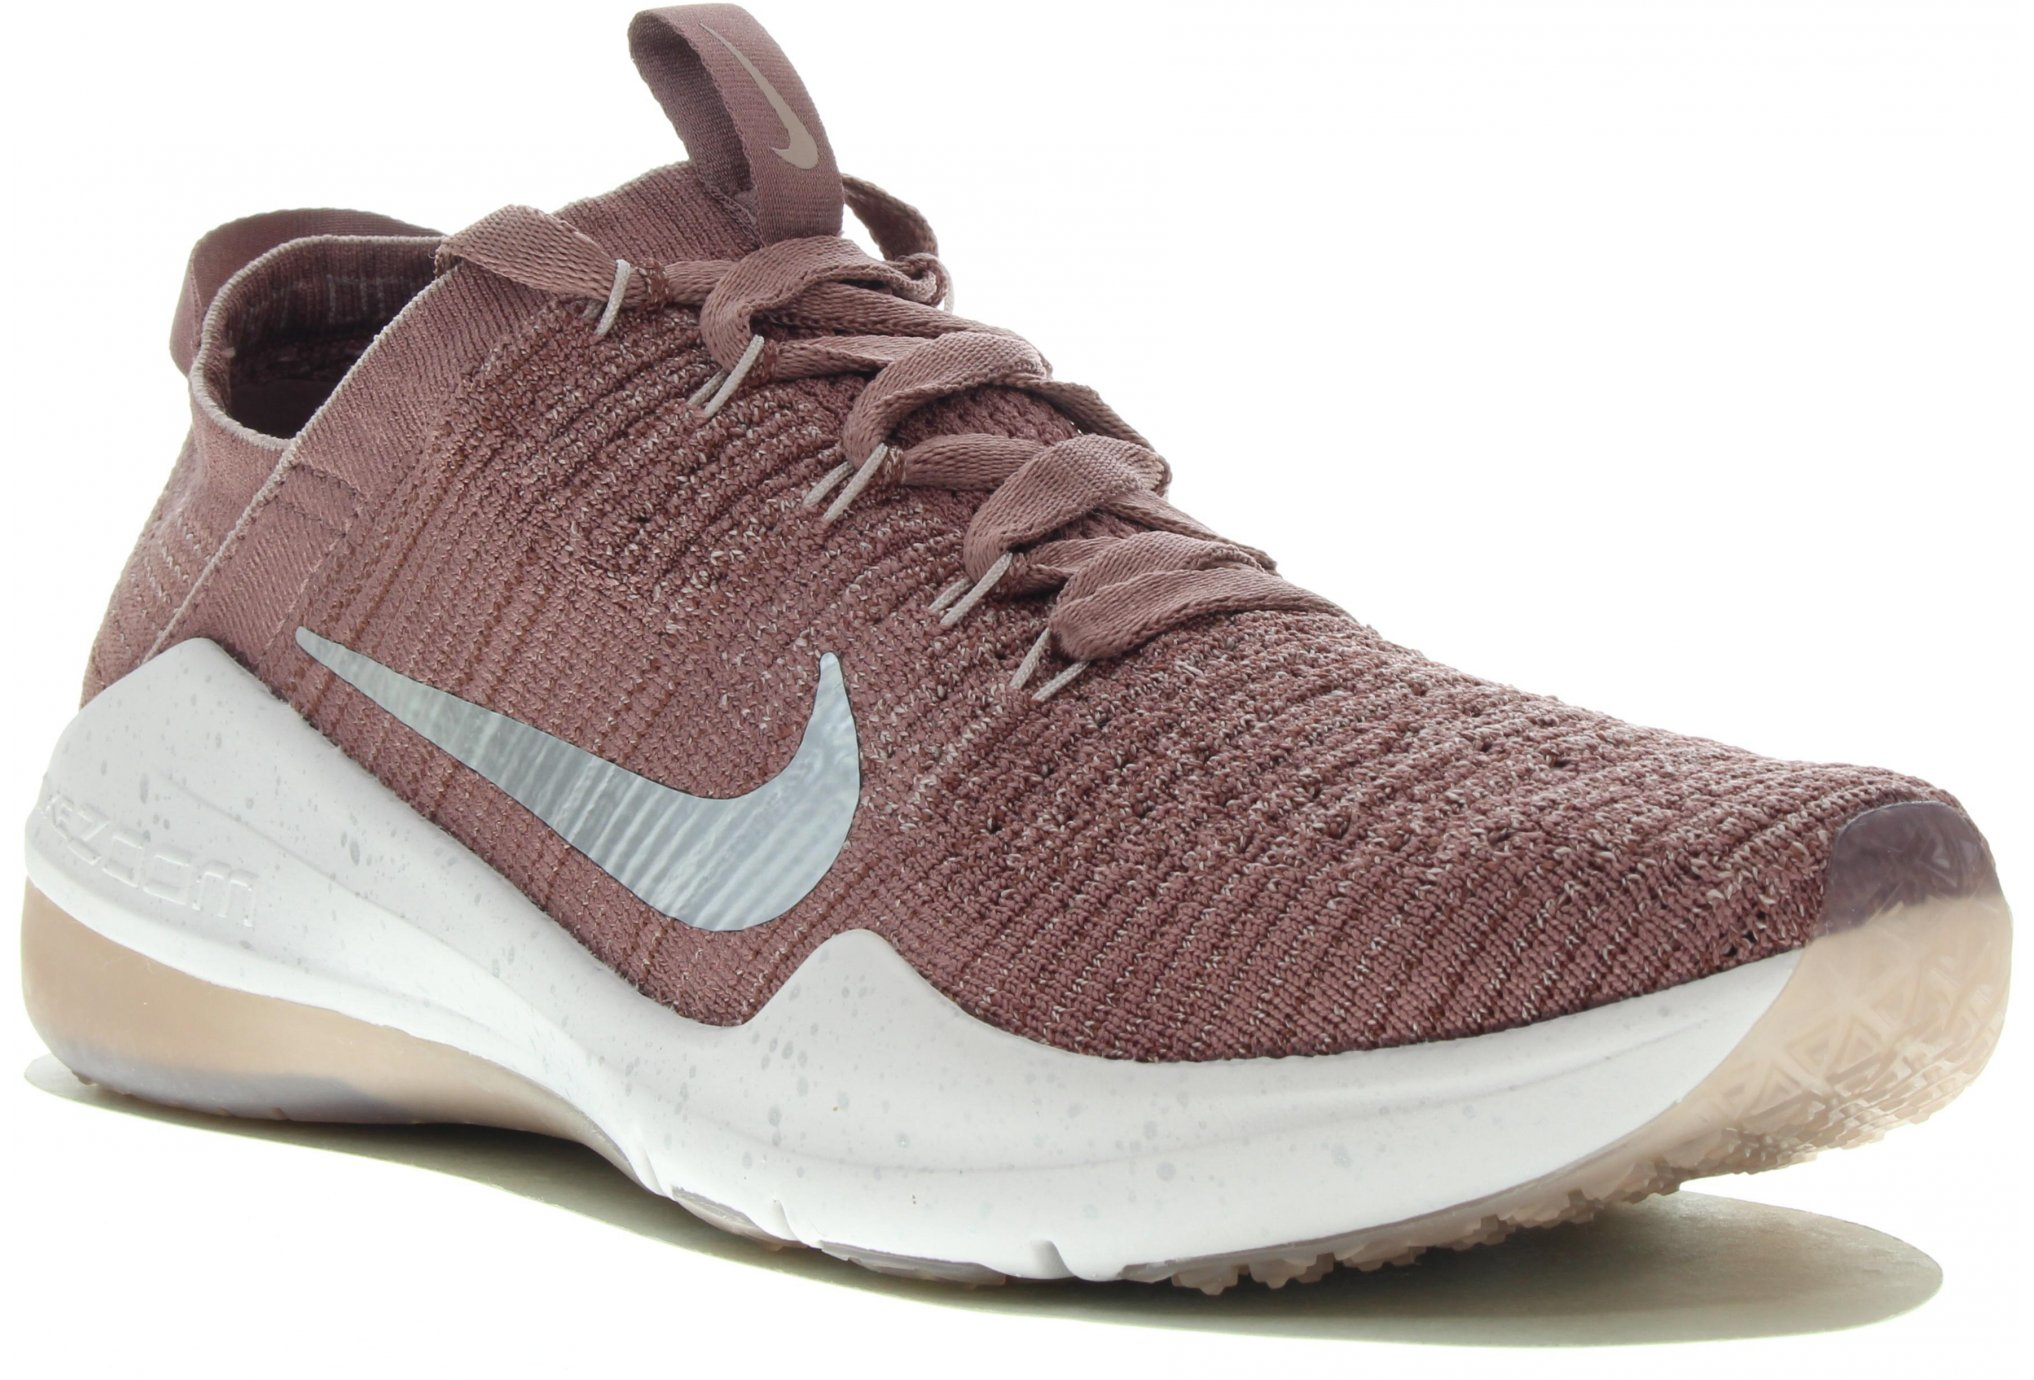 Nike Air Zoom Fearless Flyknit 2 LM W Chaussures running femme